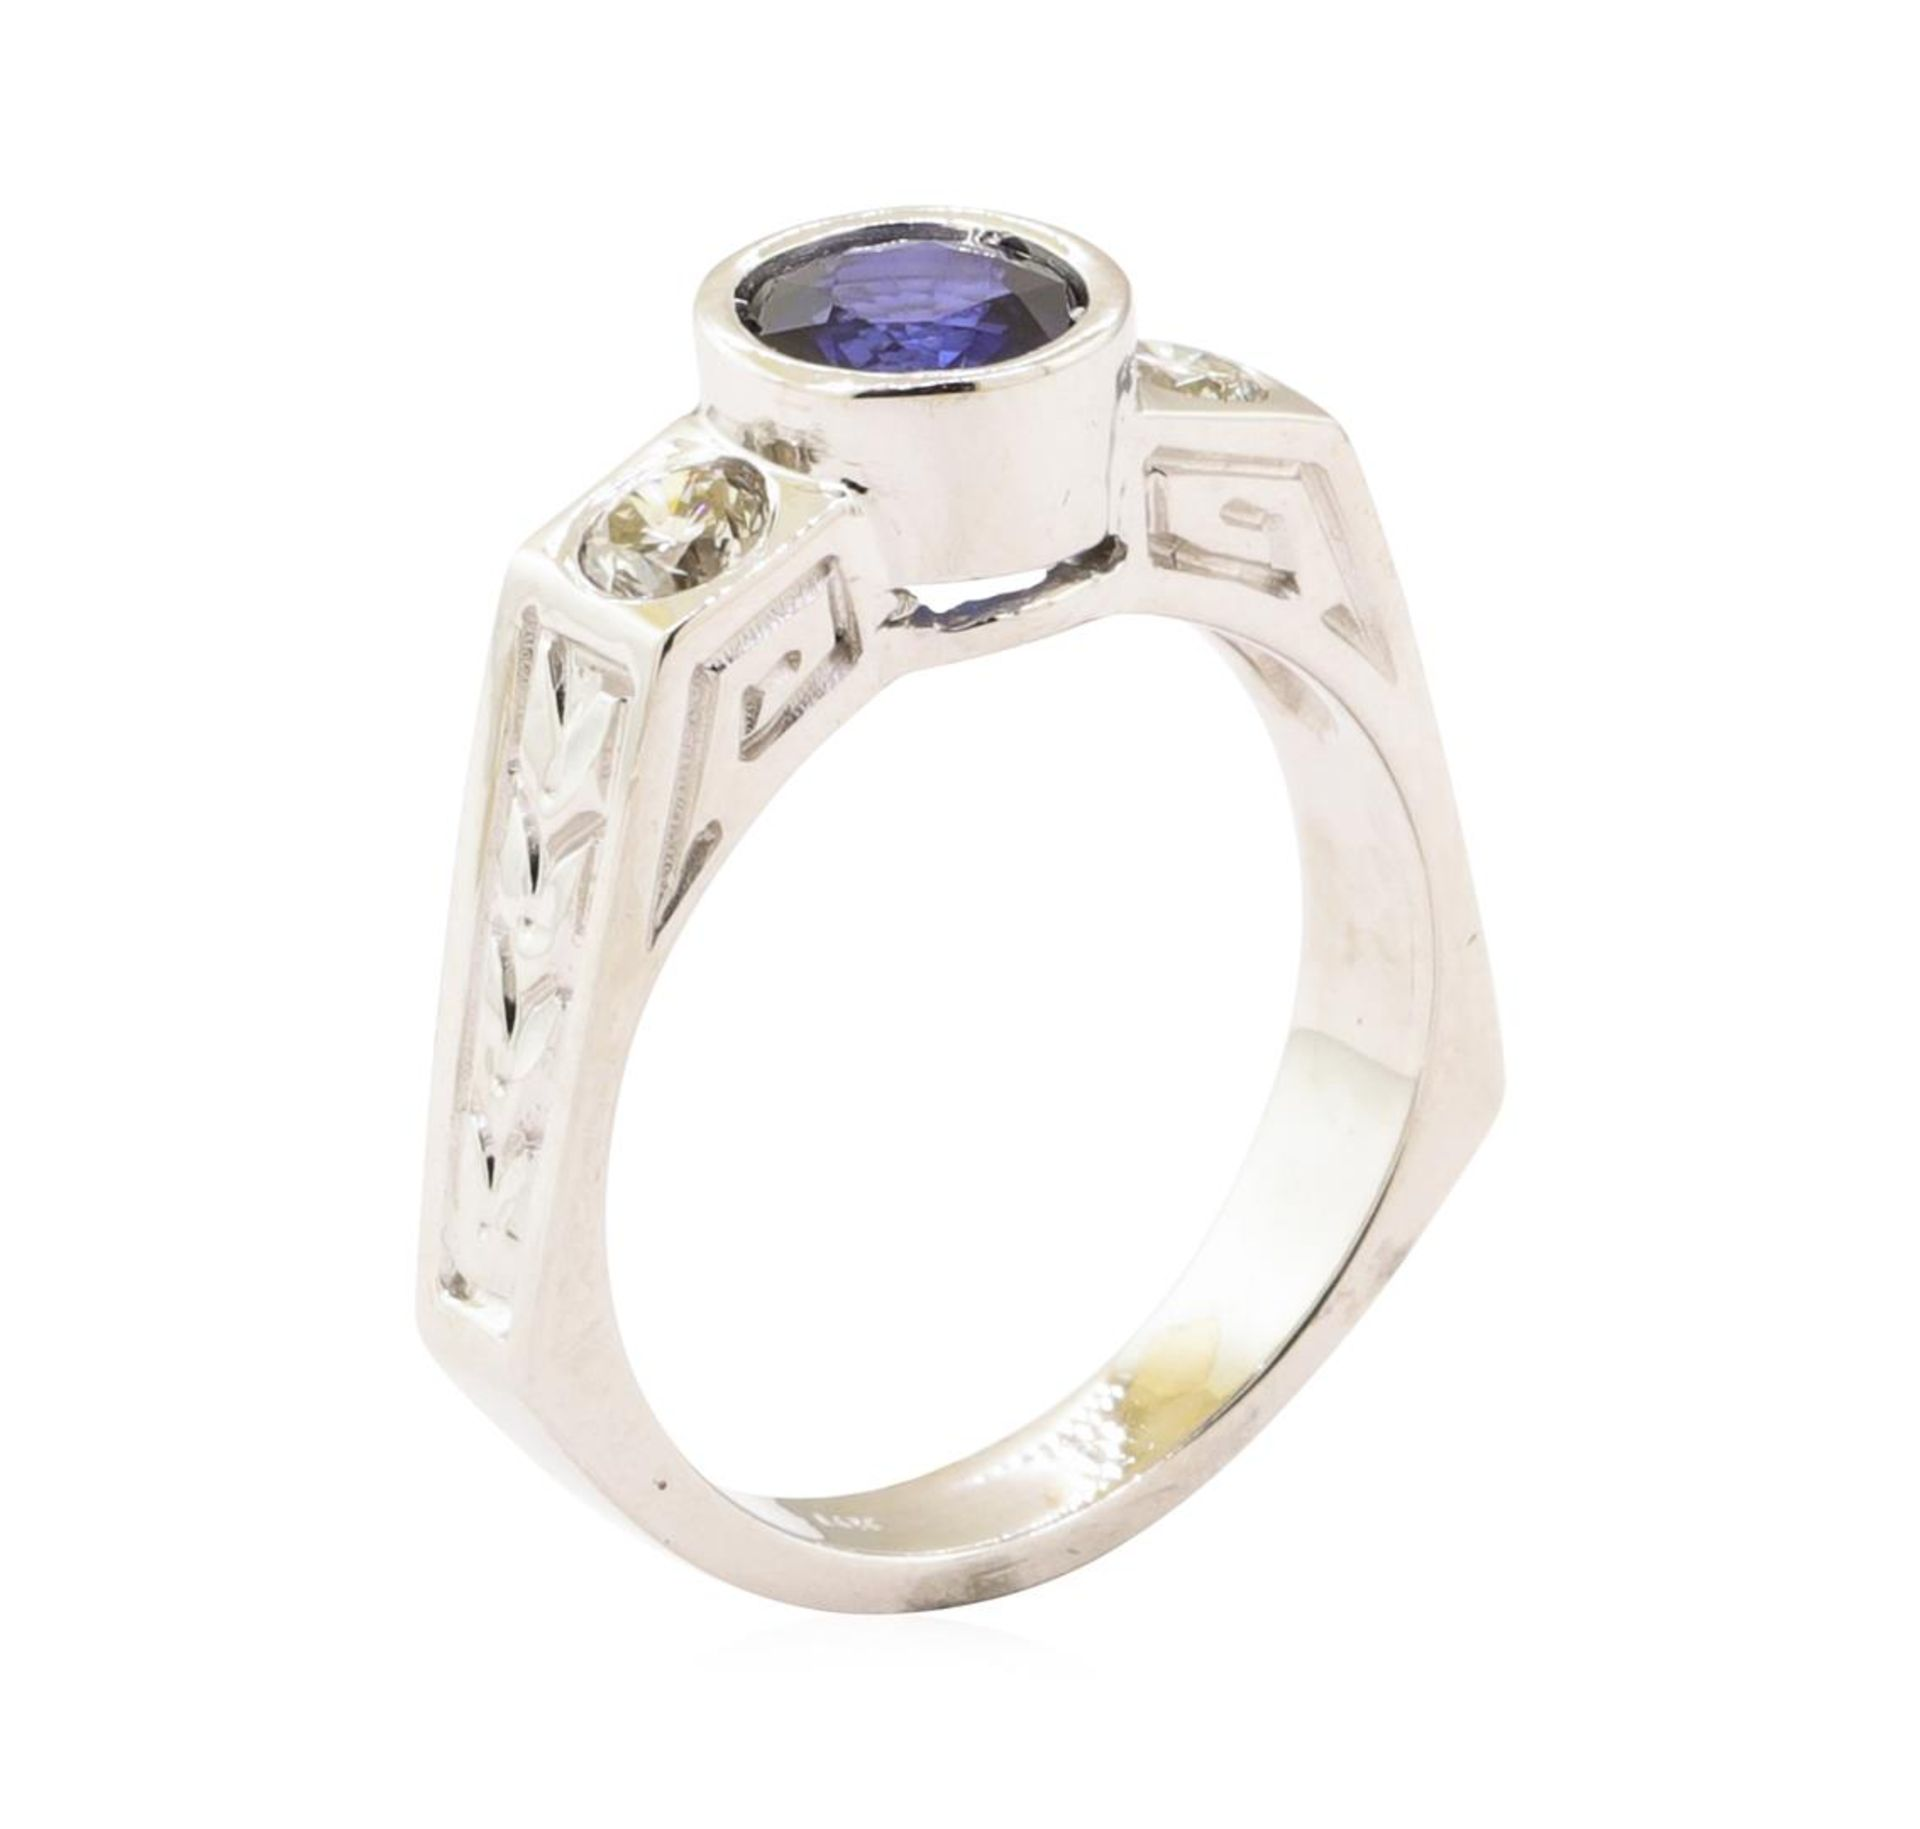 1.60 ctw Blue Sapphire And Diamond Ring - 14KT White Gold - Image 4 of 5